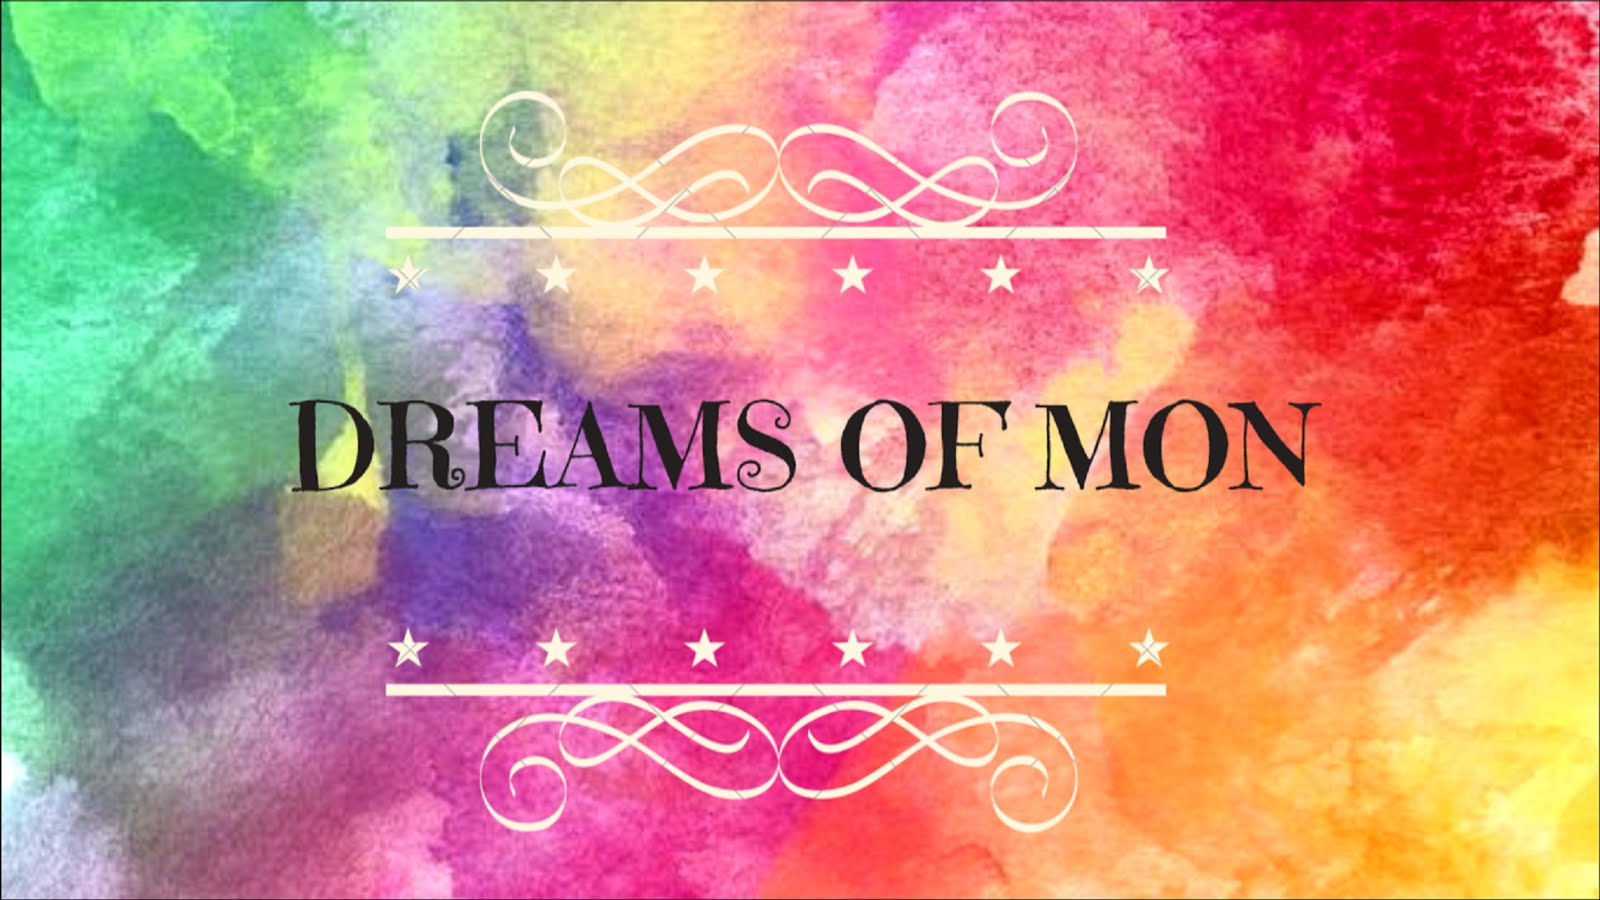 Dreams of Mon